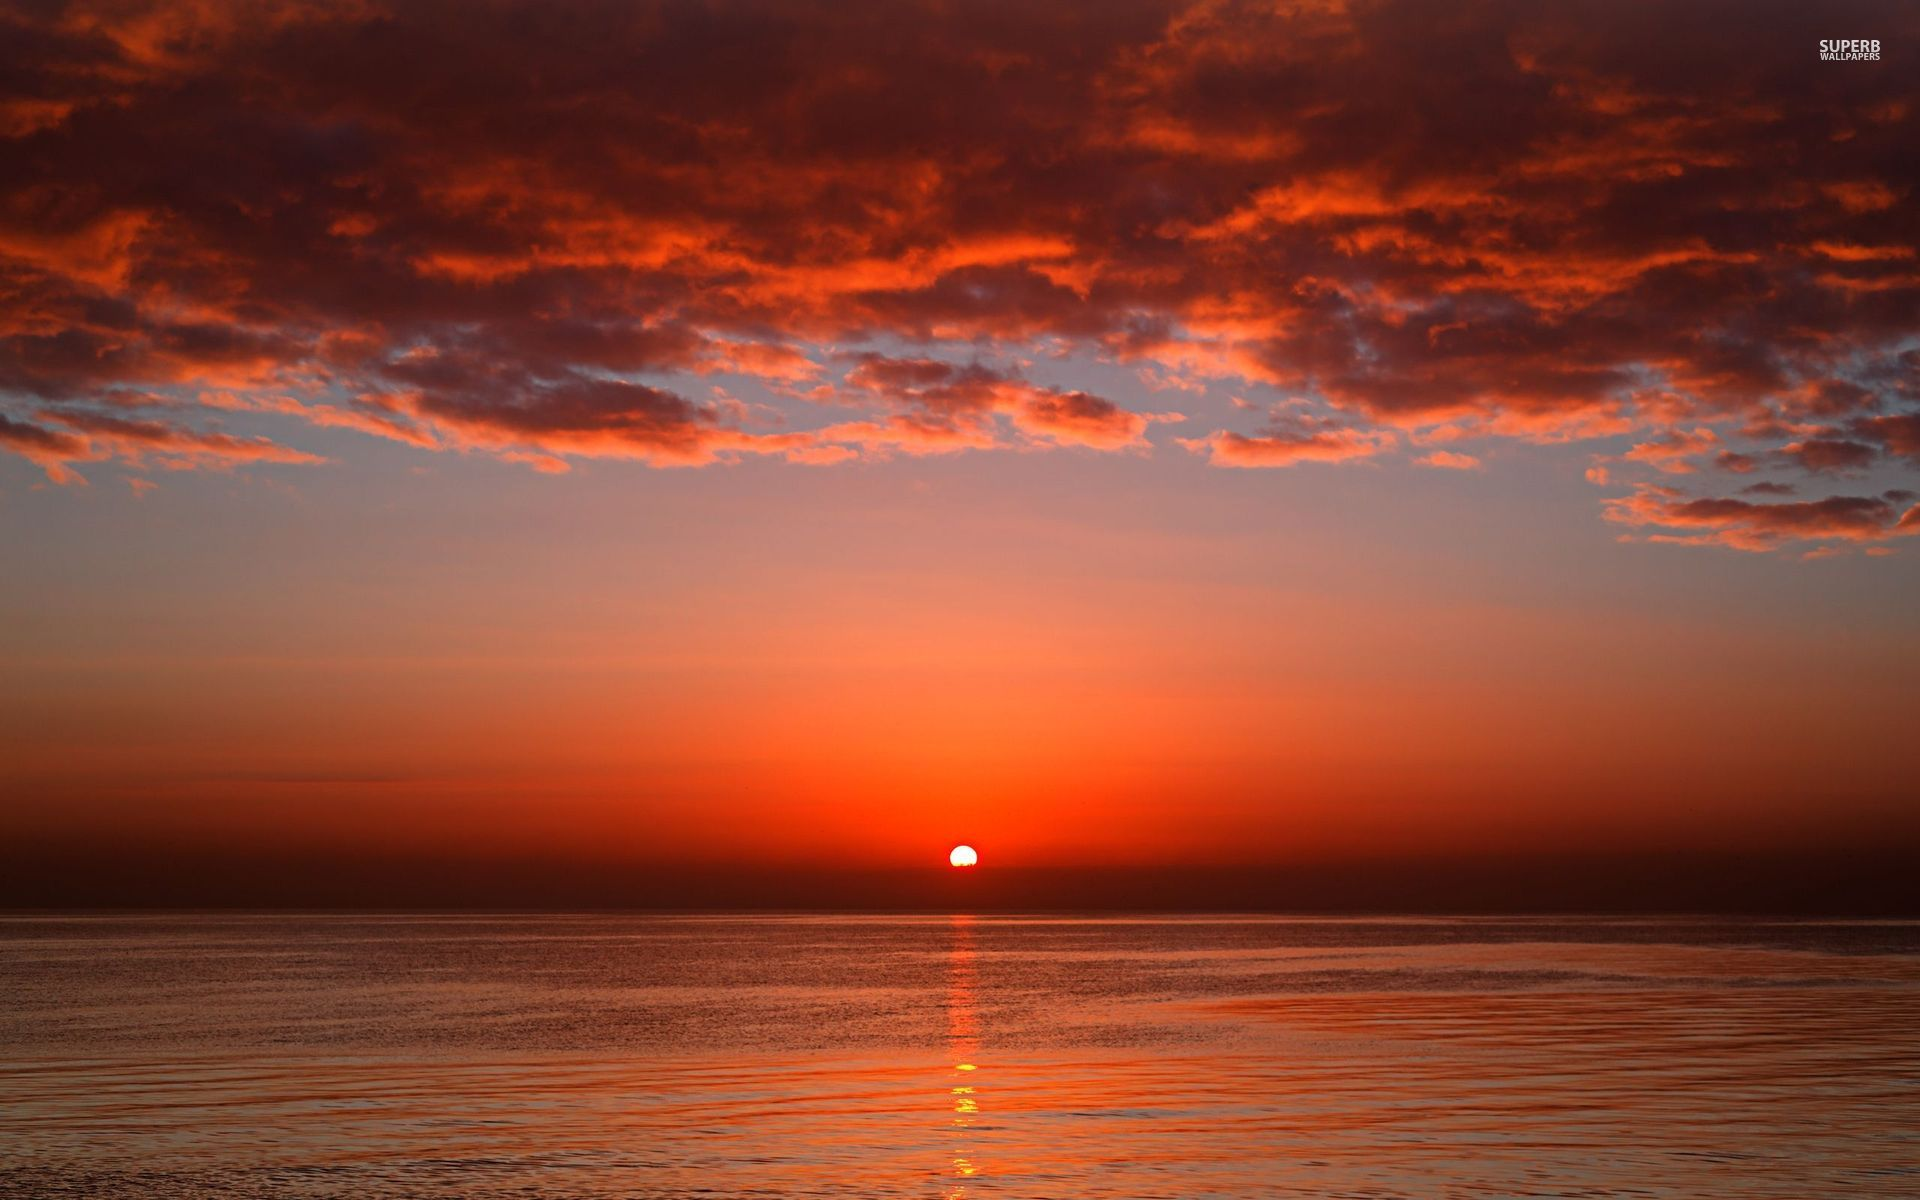 Red Sunset Ocean & Red Clouds wallpapers | Red Sunset ...